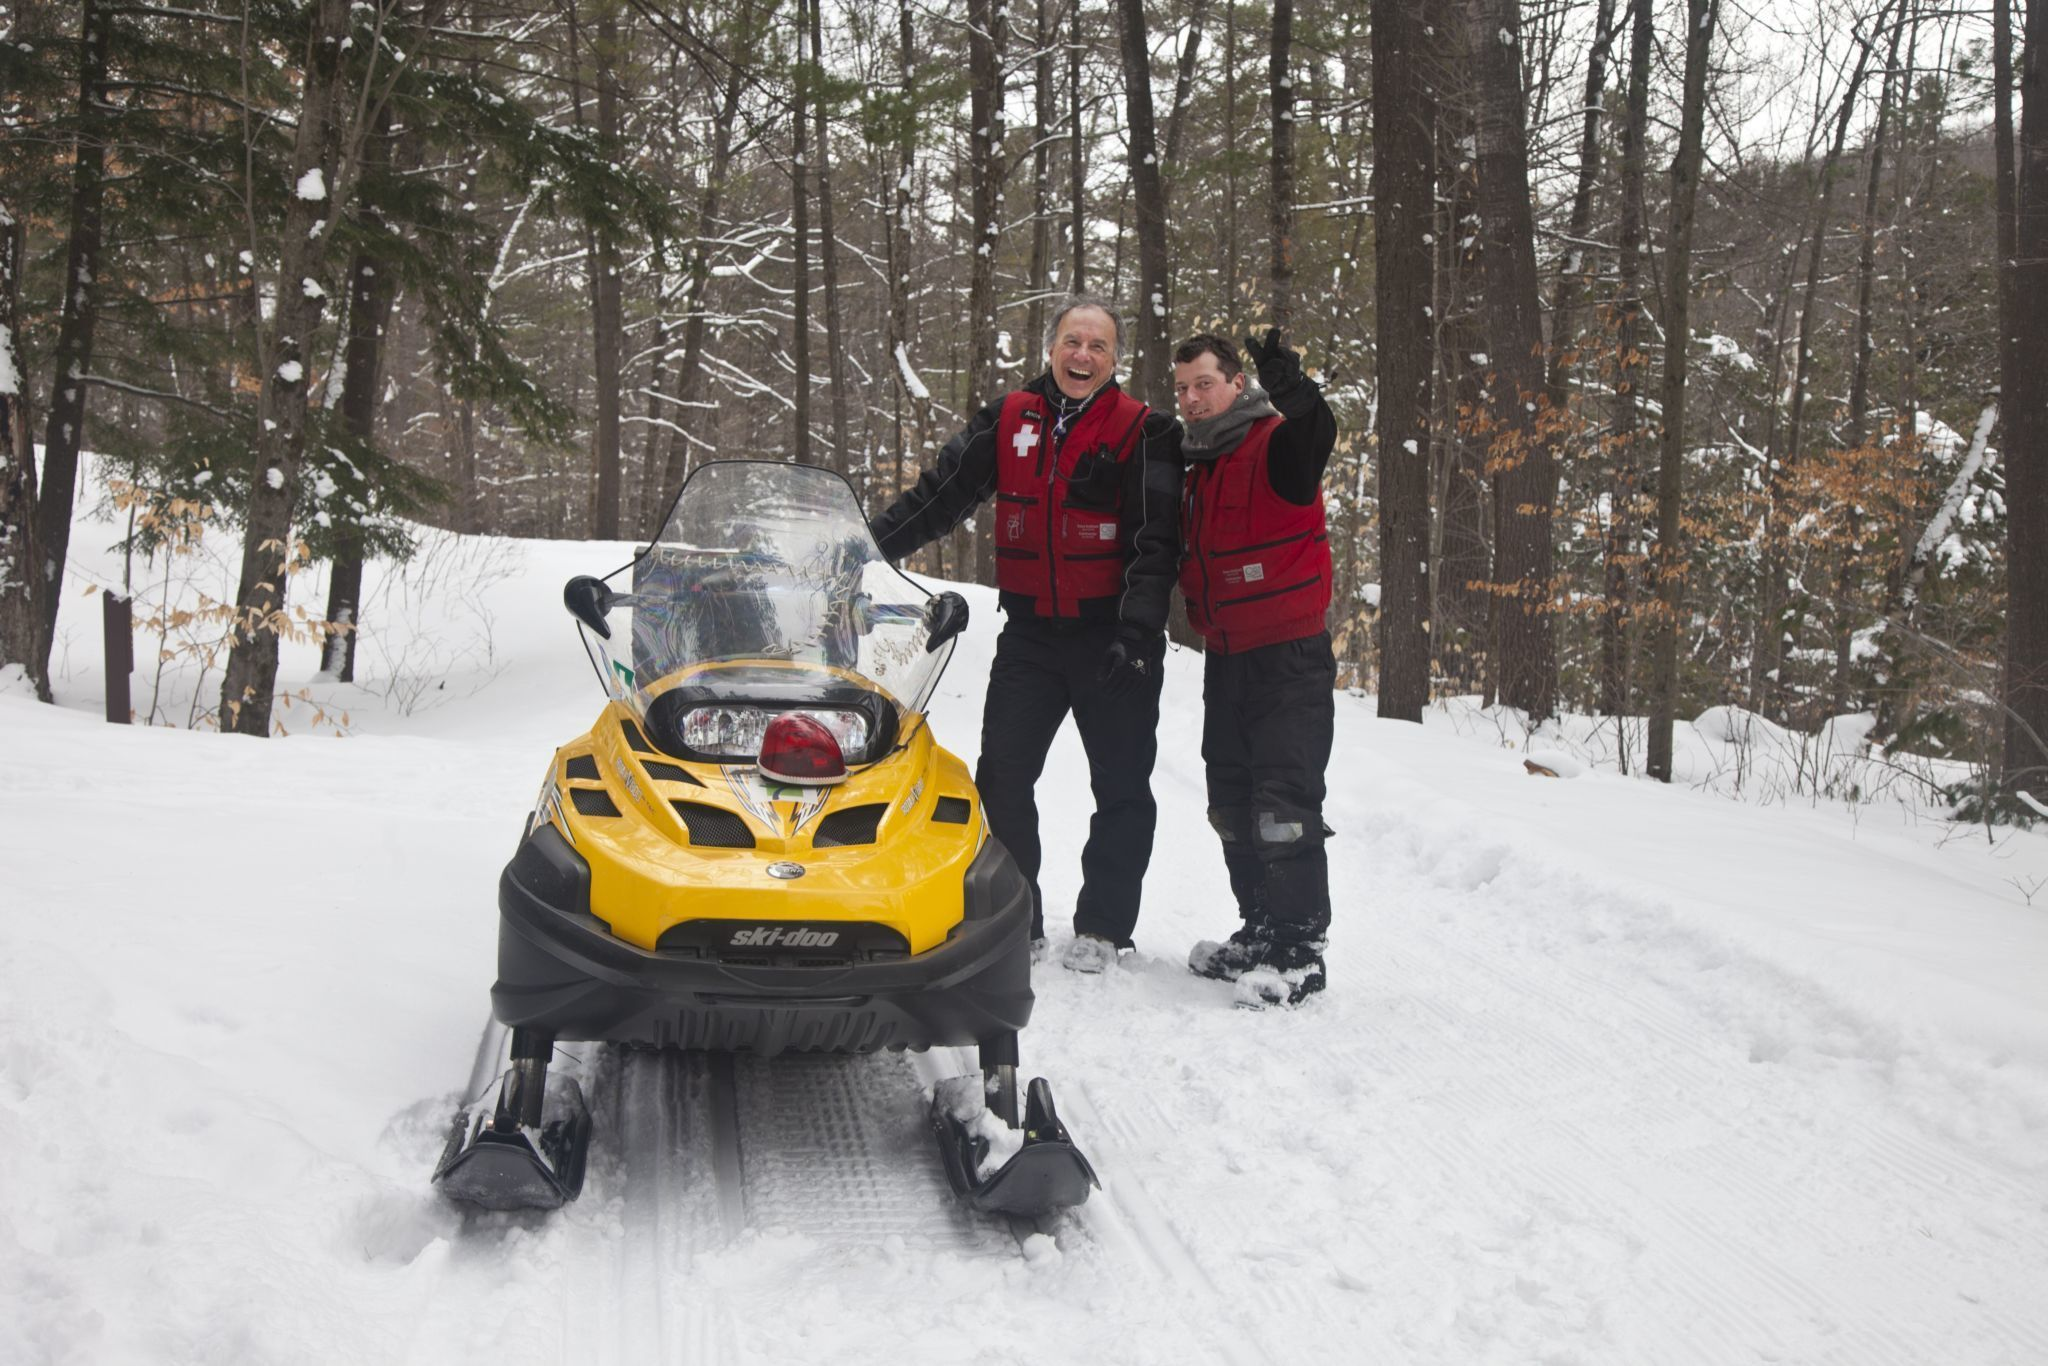 Ski patrol on snow mobile